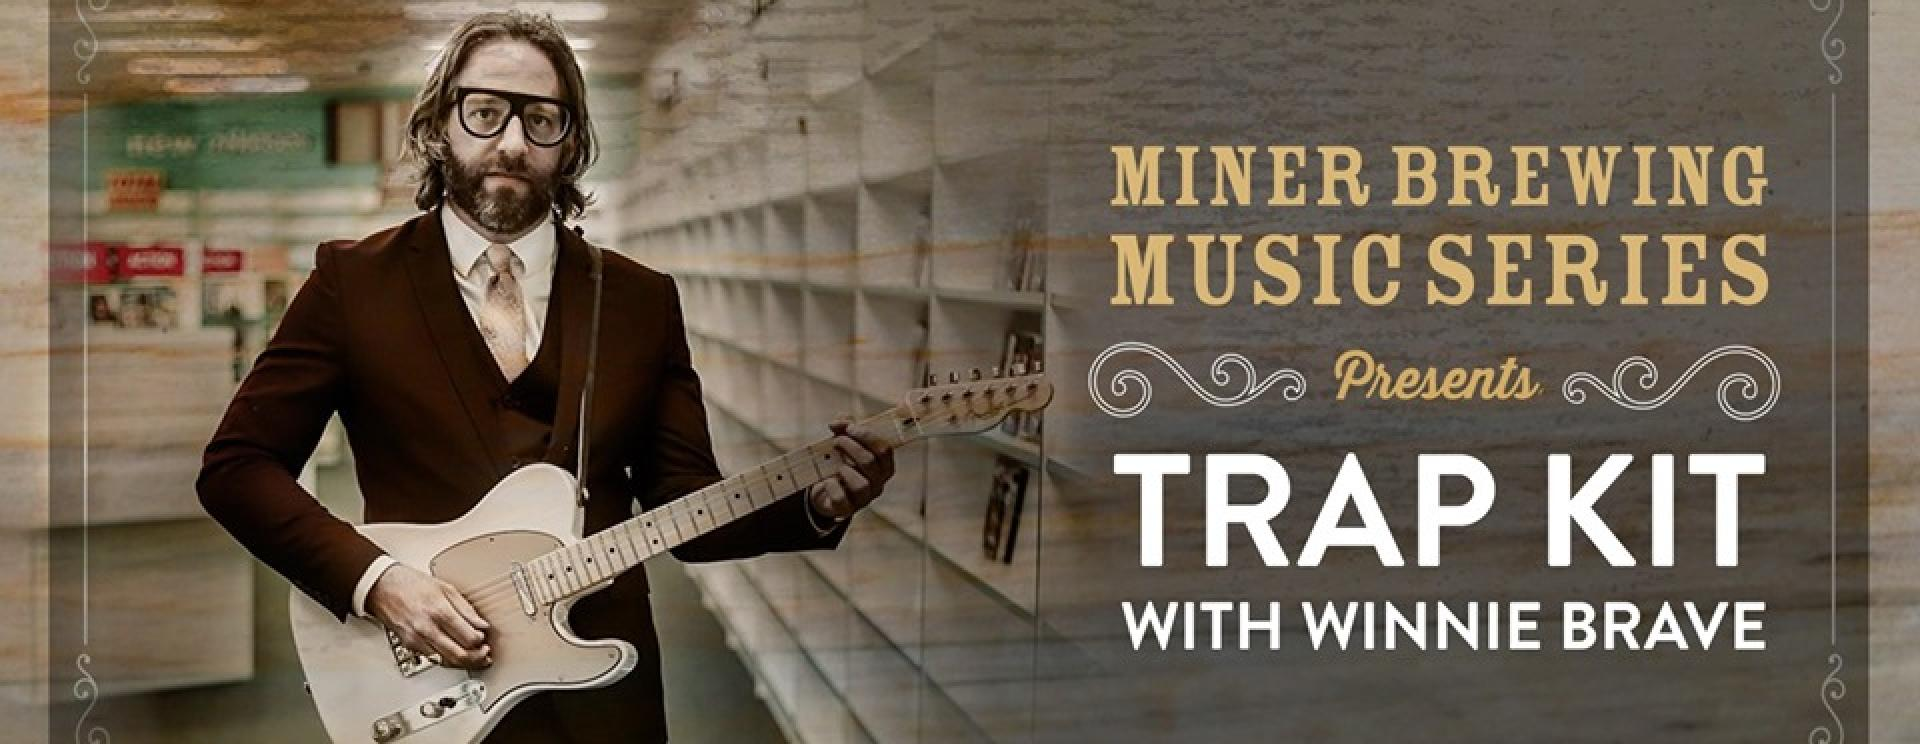 Miner Brewing Music Series Presents: Trap Kit